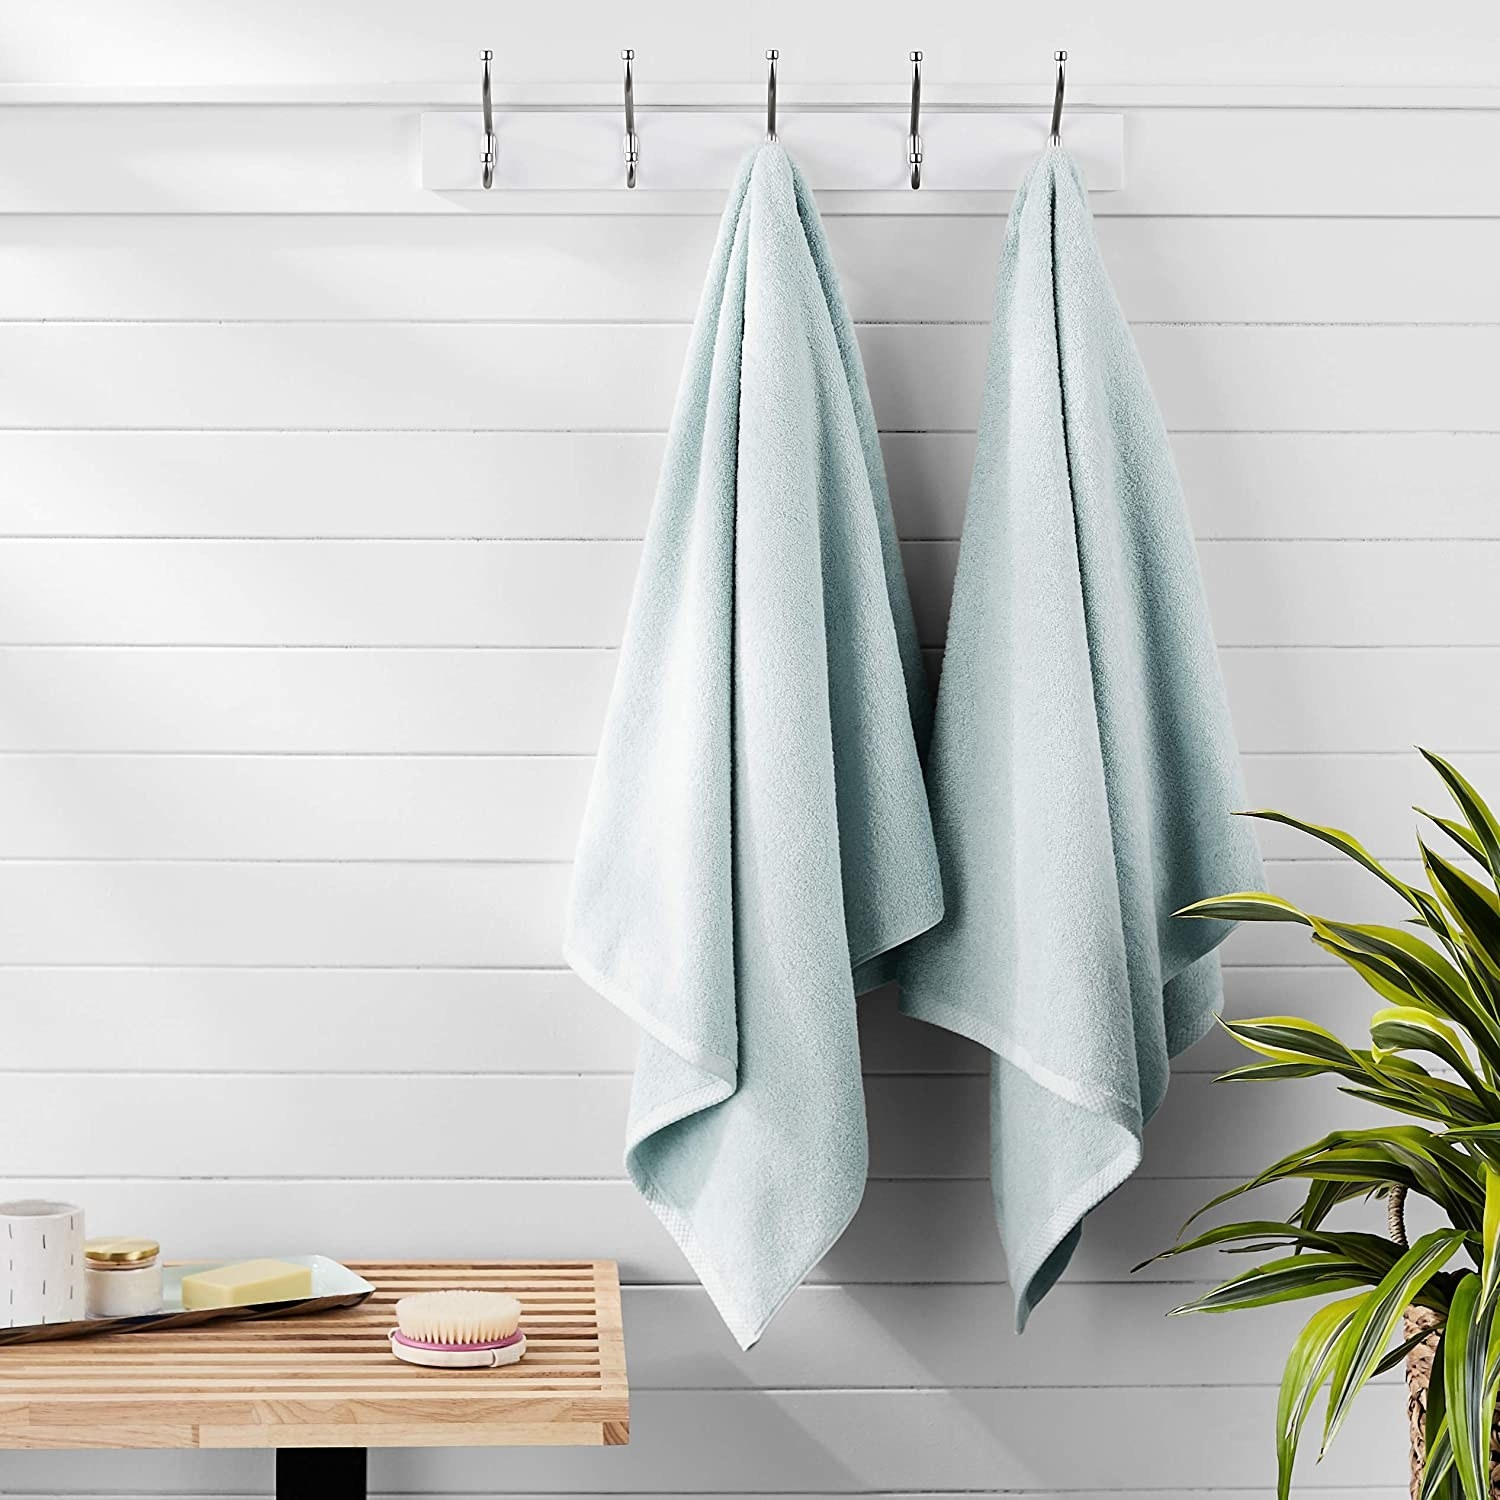 Pastel blue towels hanging on wall